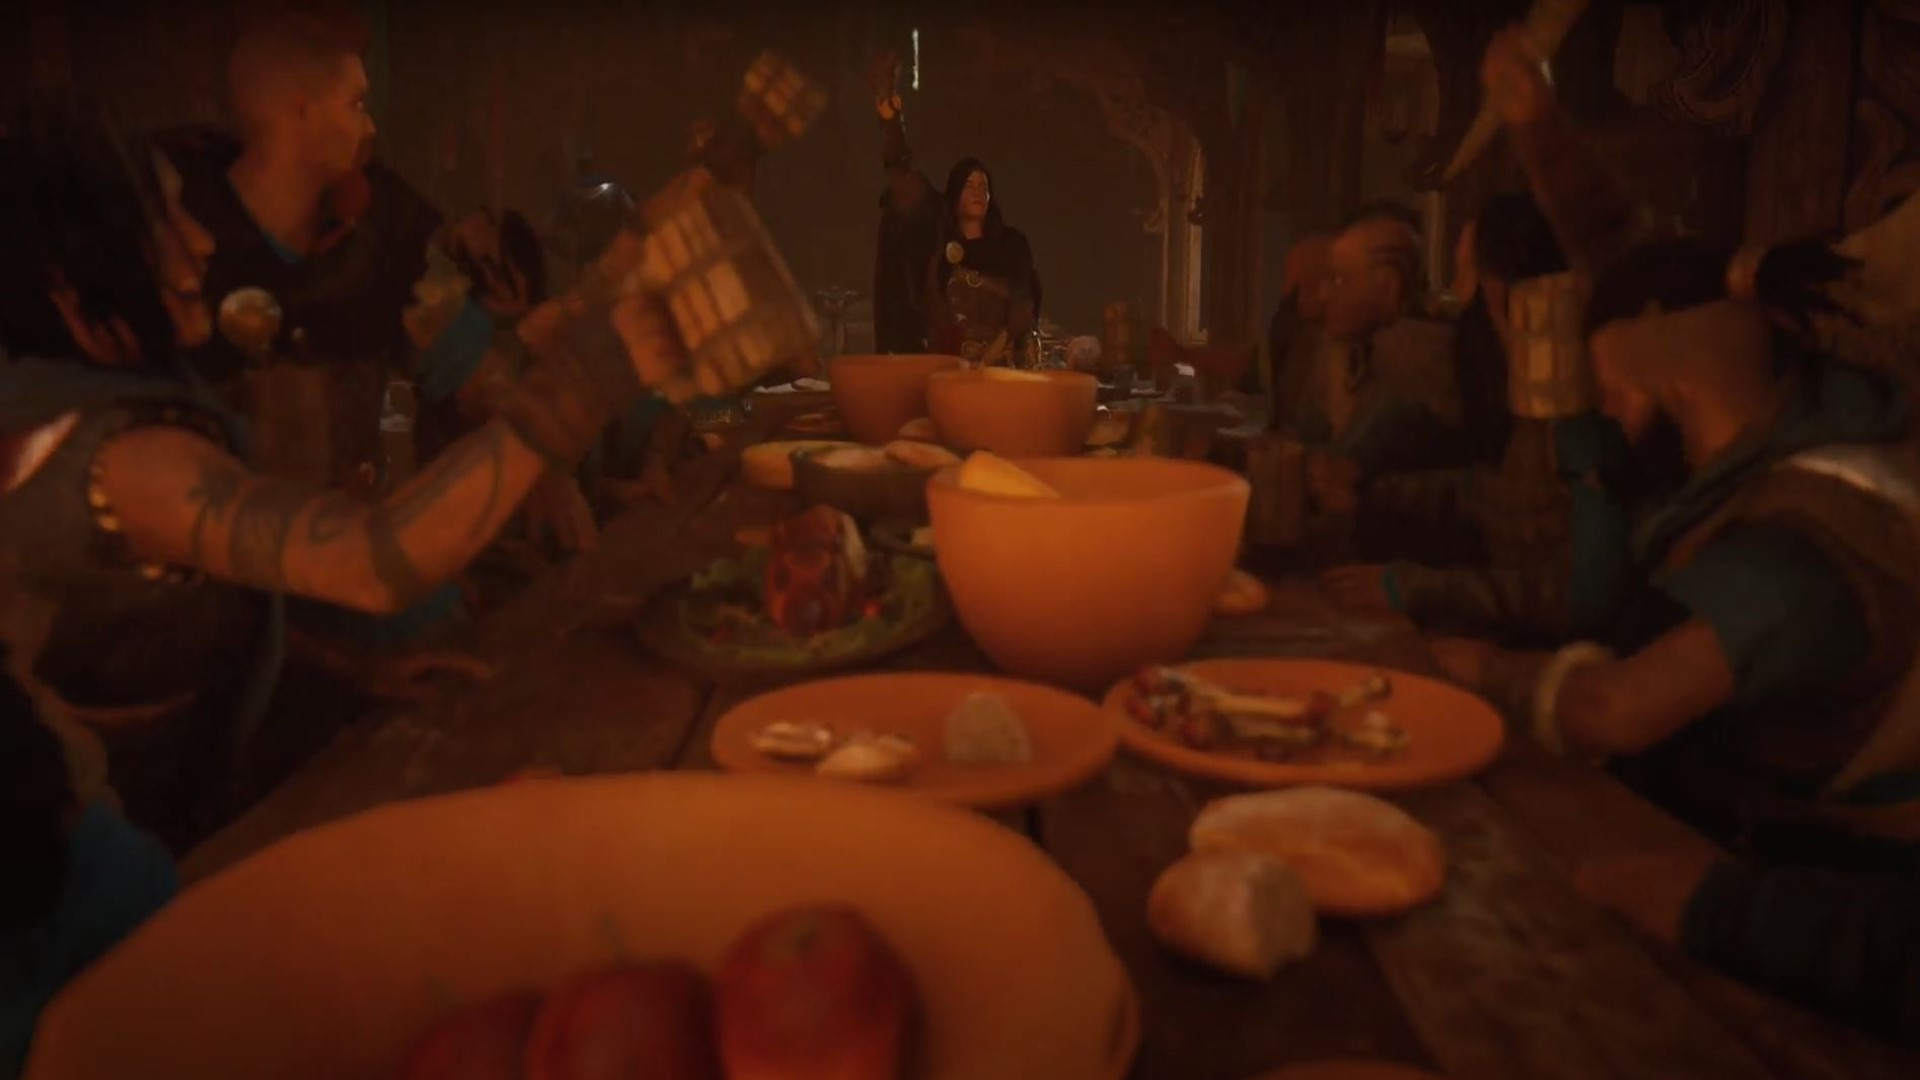 A great Viking feast in Valhalla. Plates and plates of food adorn the long table, everyone raises toasts!